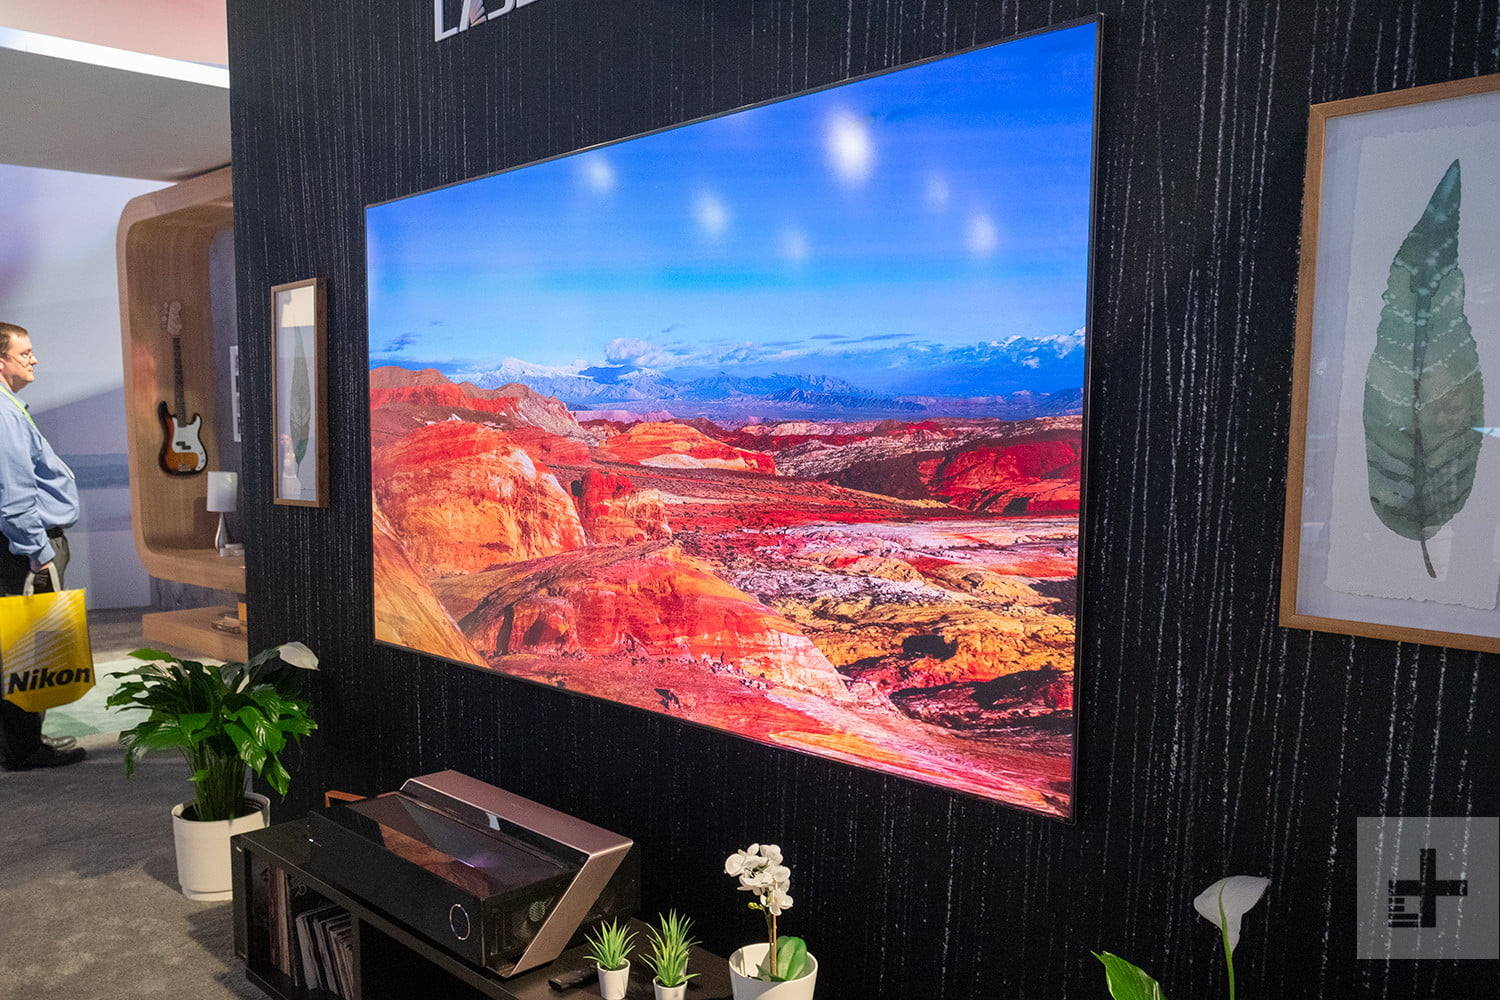 CES 2019 | The Best TVs of CES 2019 All In One Place | Digital Trends